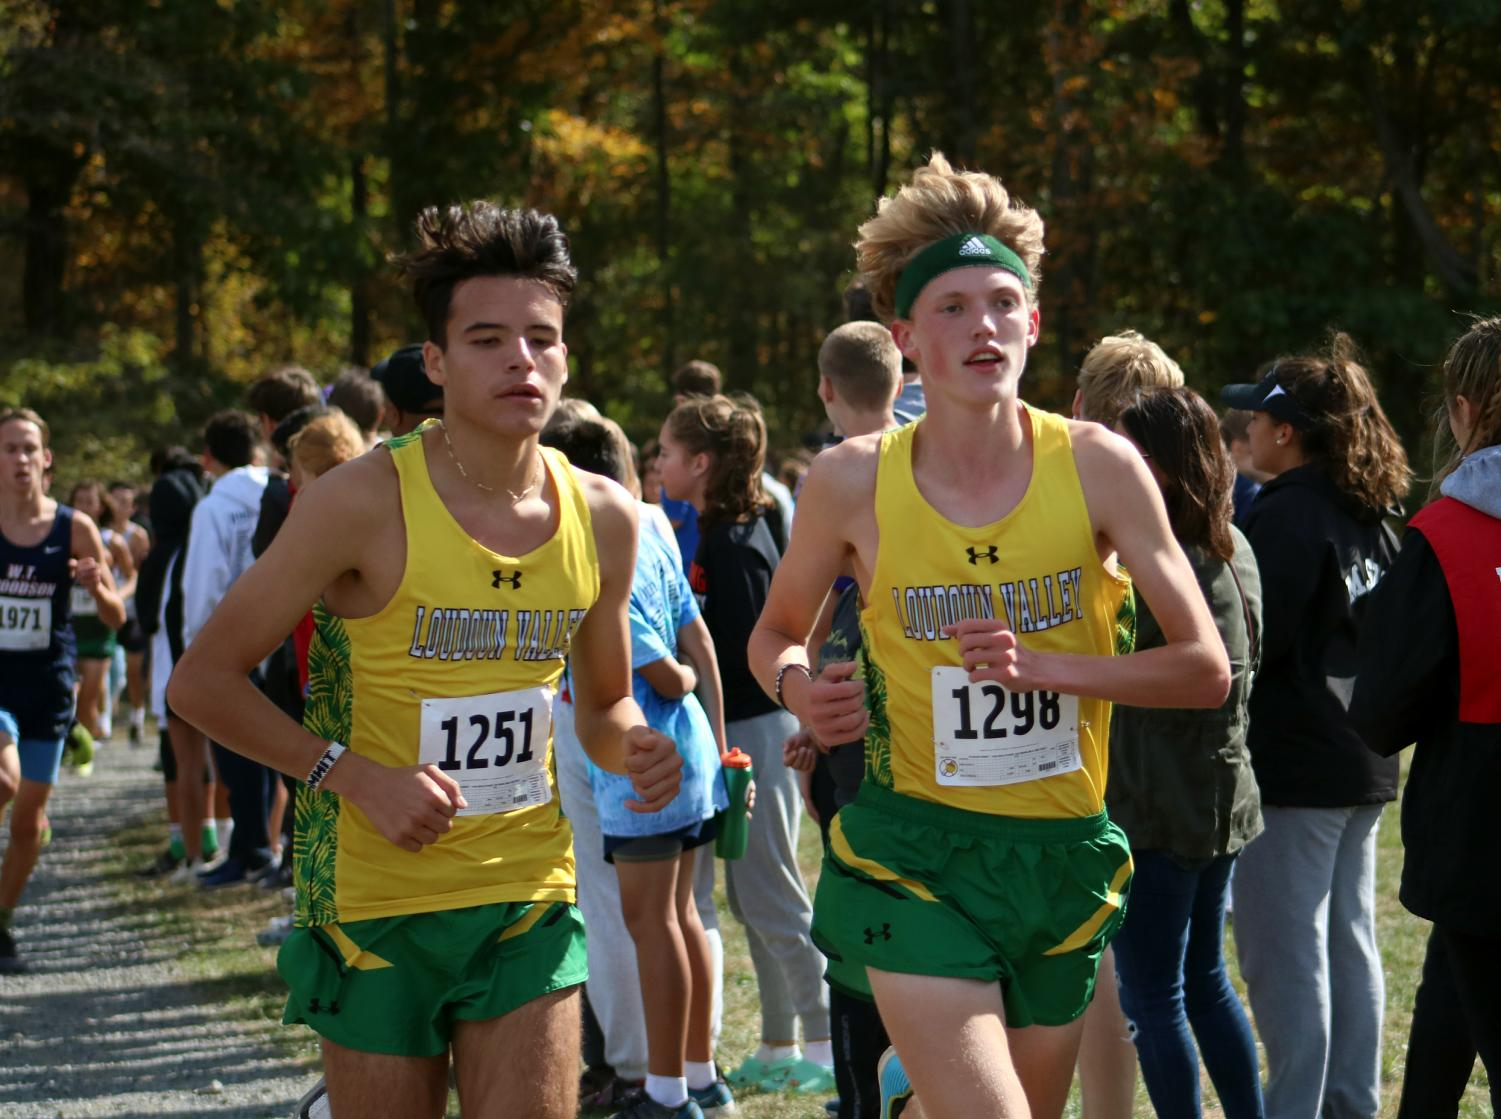 Christian Arellano (left) and Josh Walker (right) run side by side, as they run at the front of the pack, competing in the varsity boys race, at Third Battle.